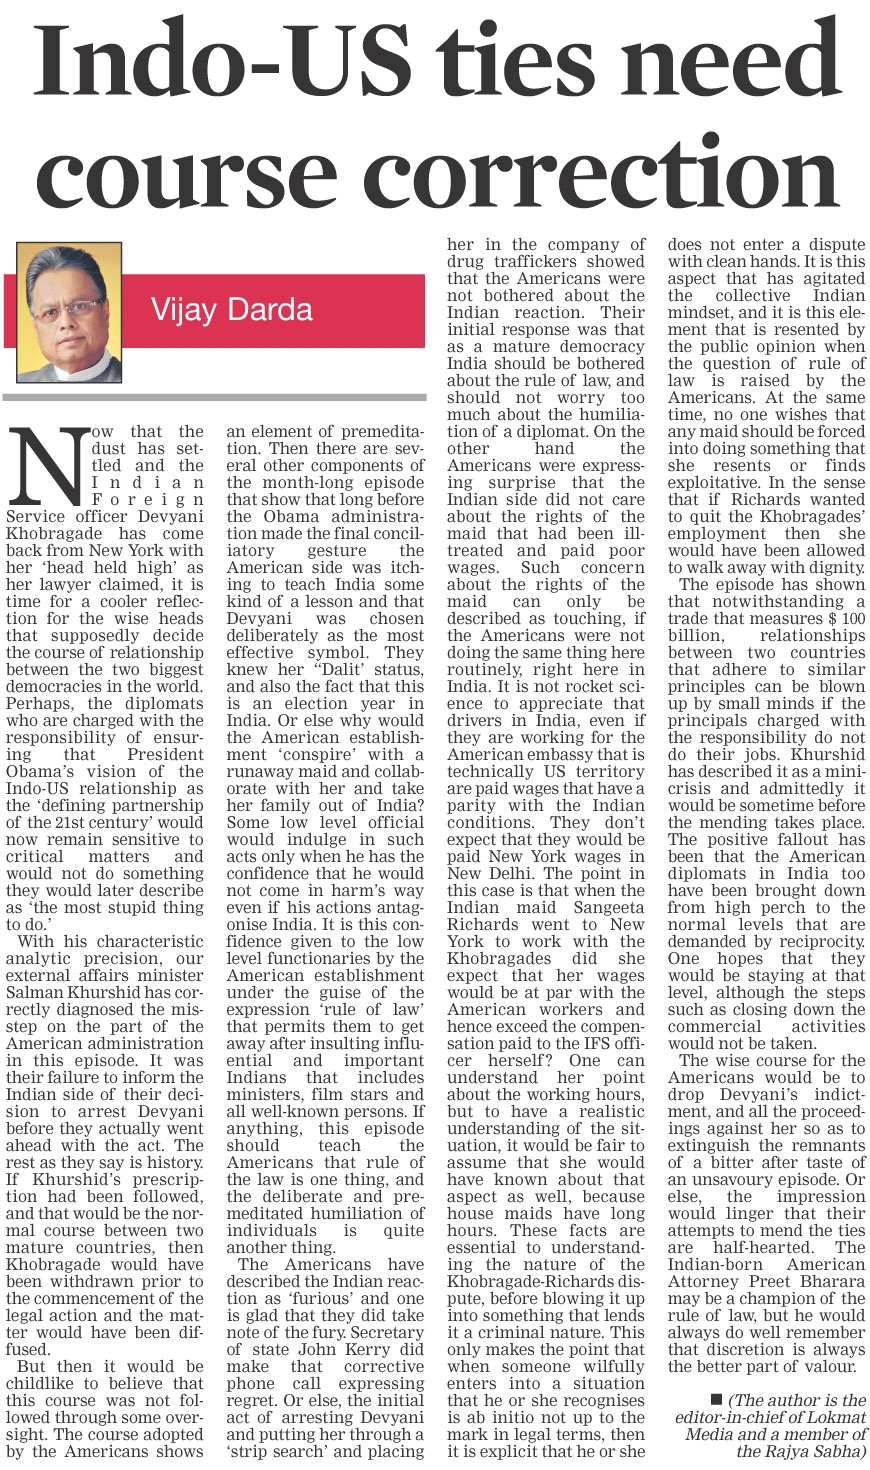 Indo-US ties need course correction